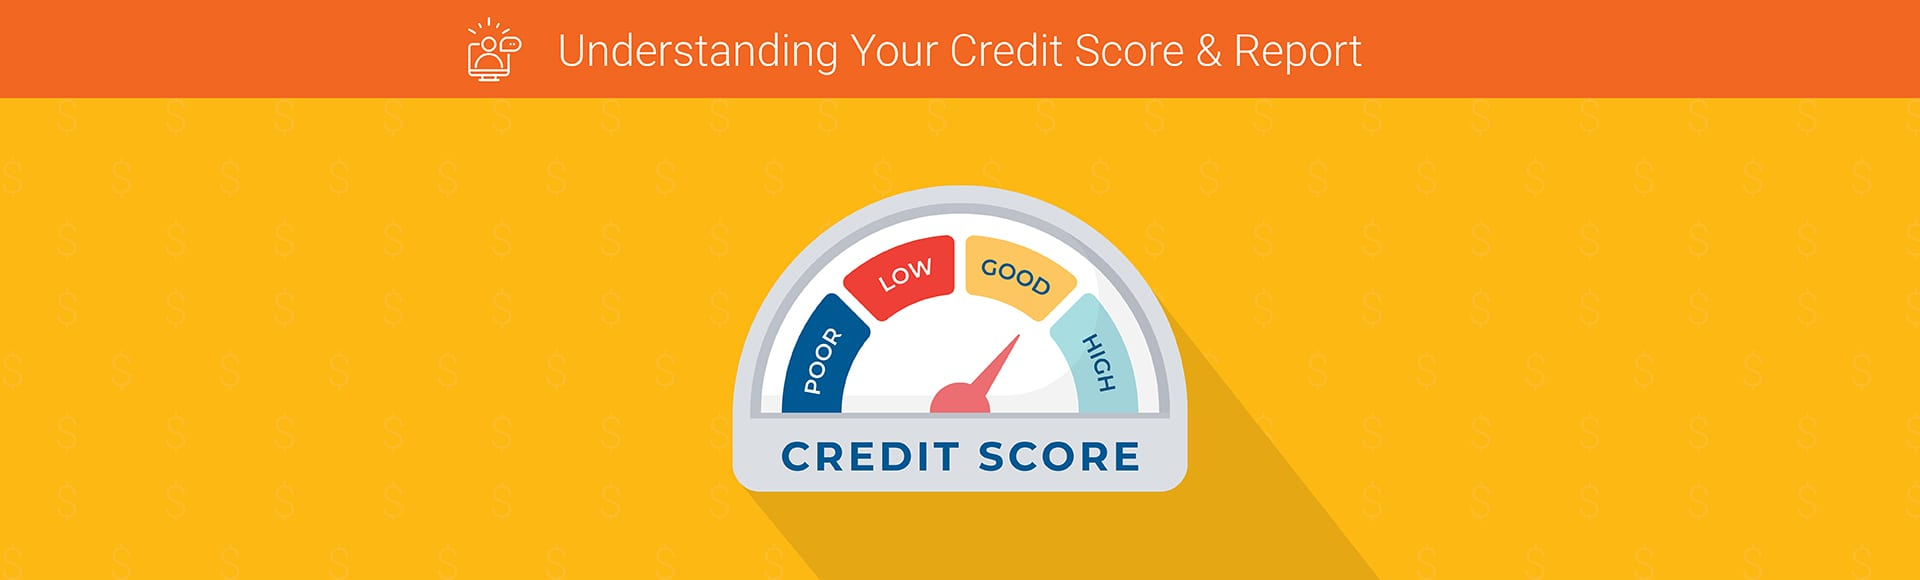 Credit Score icon. Flat design style modern vector illustration. Isolated on stylish color background.